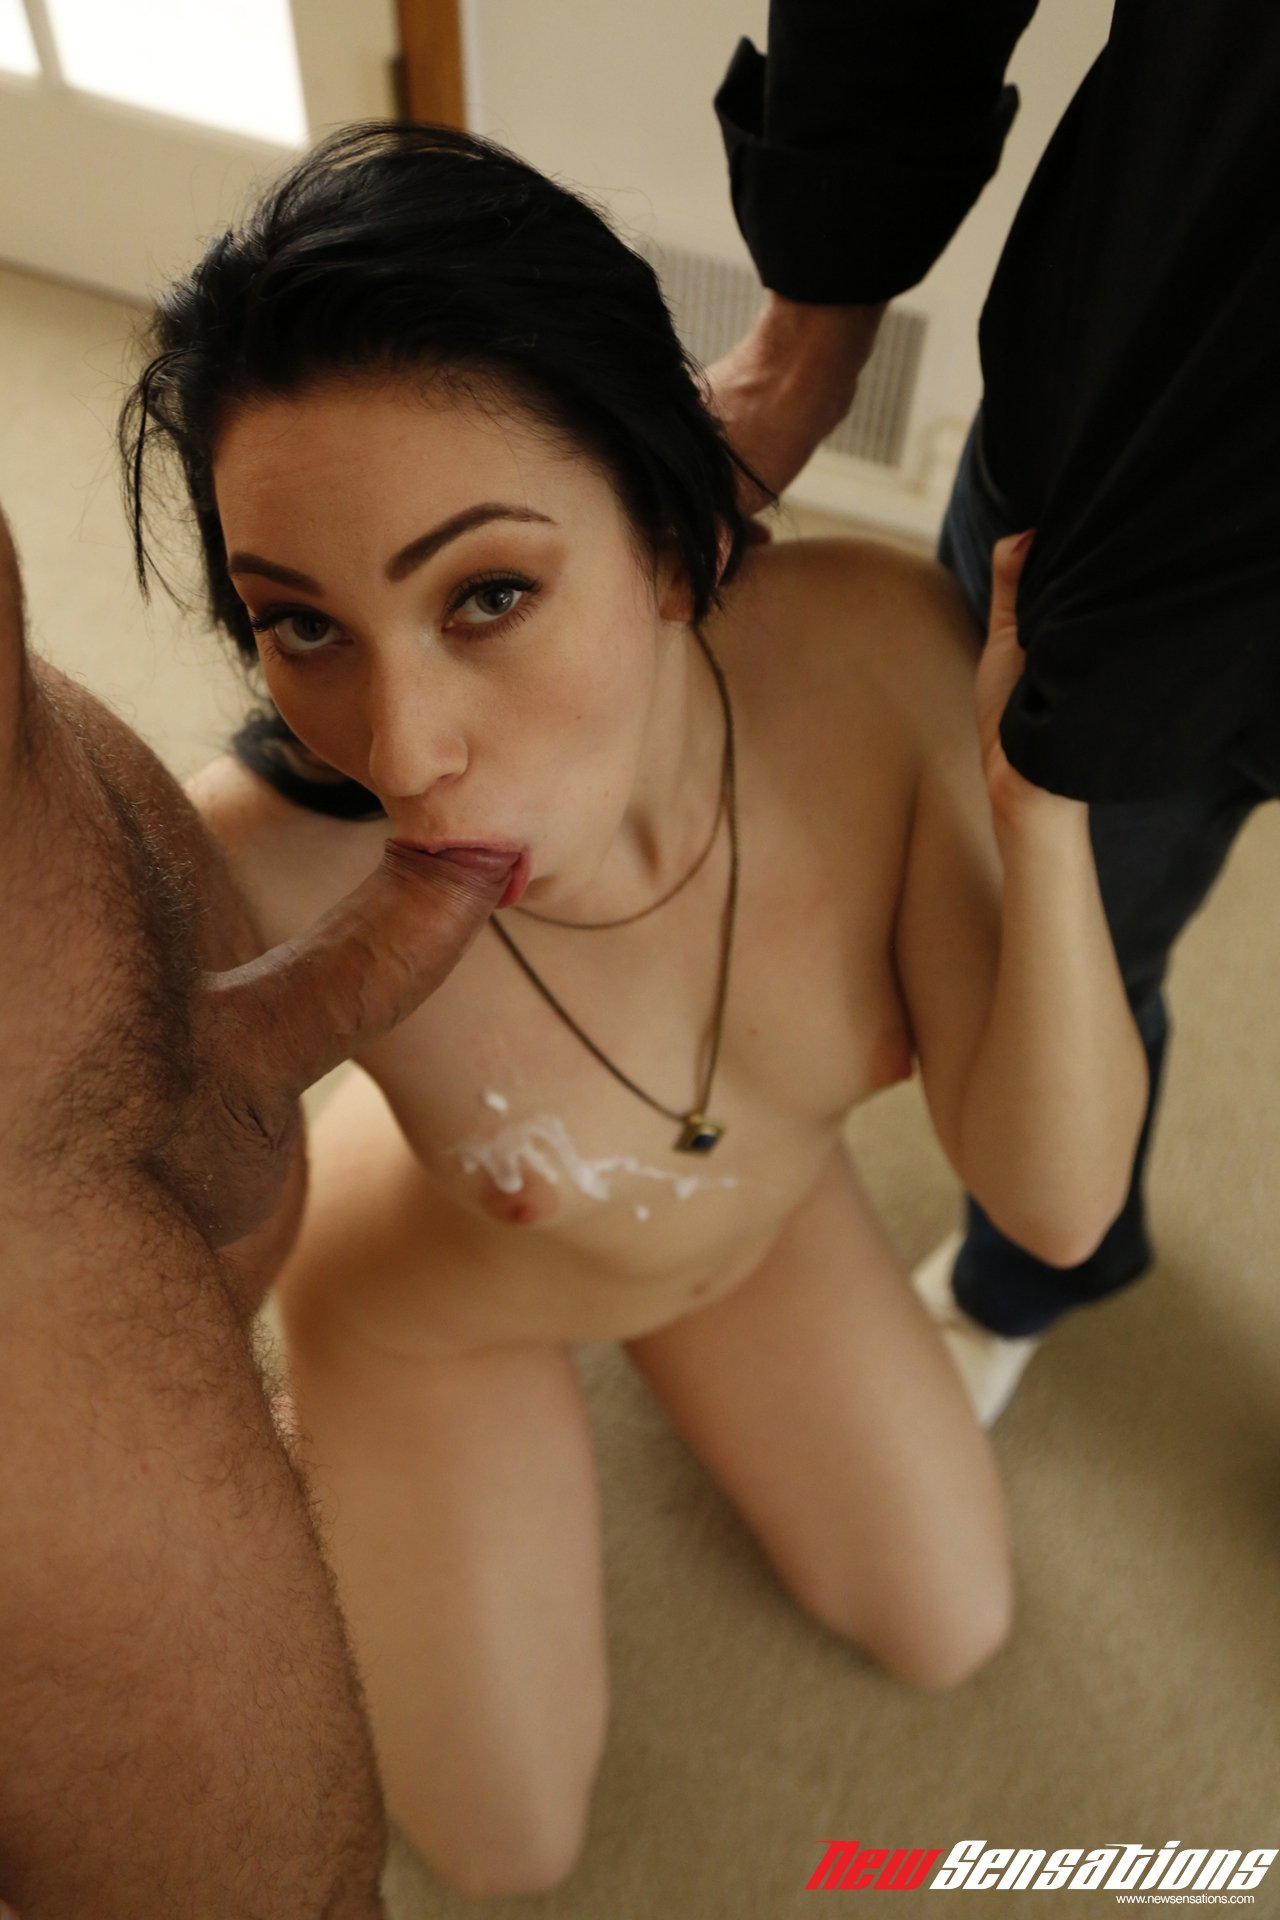 Dominating wife porn foot fetish les